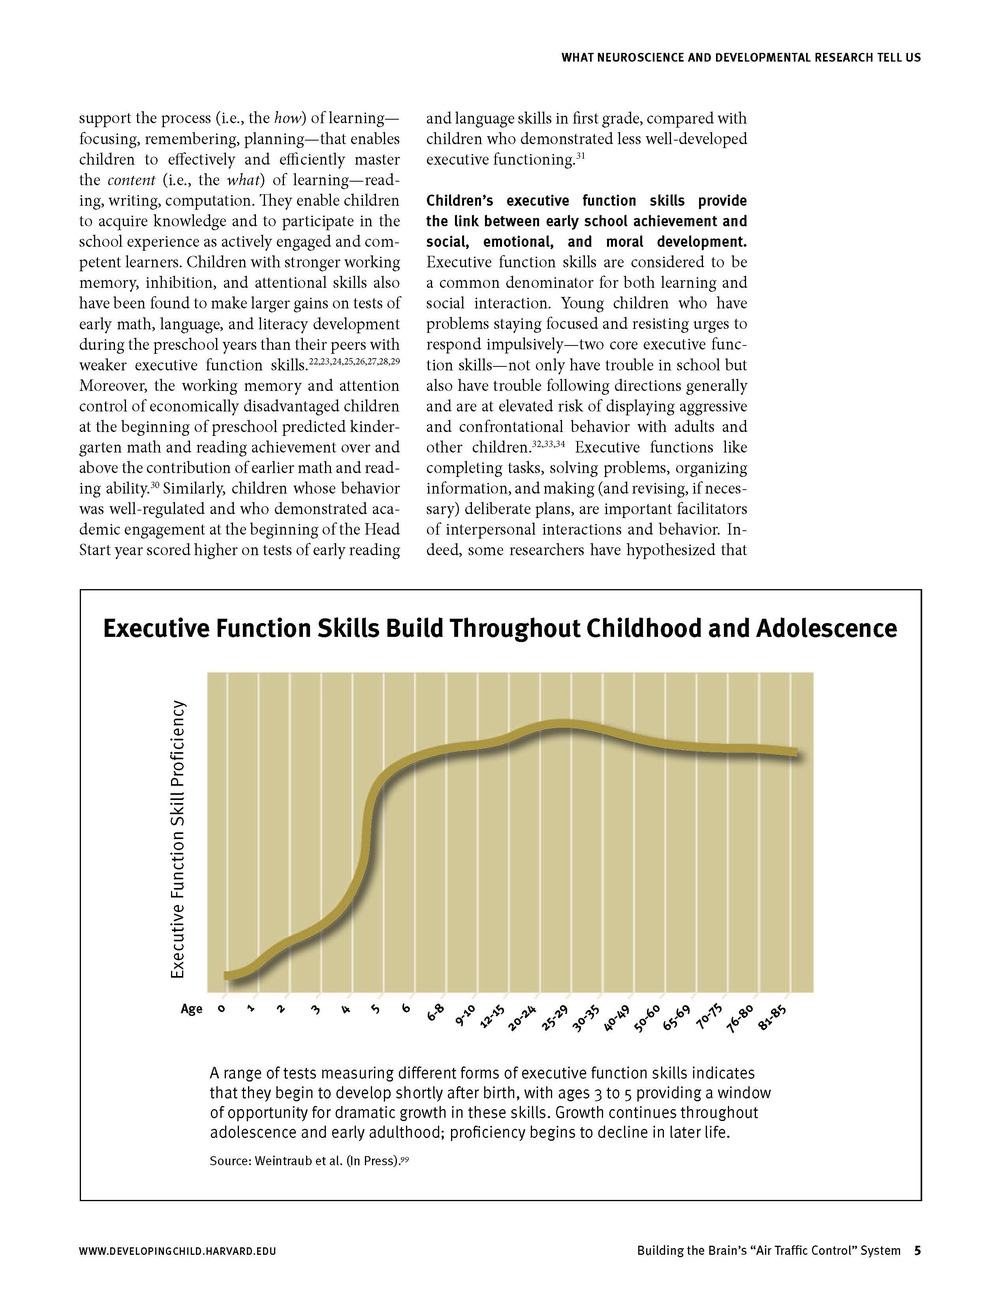 Child's Development Harvard University_Page_07.jpg